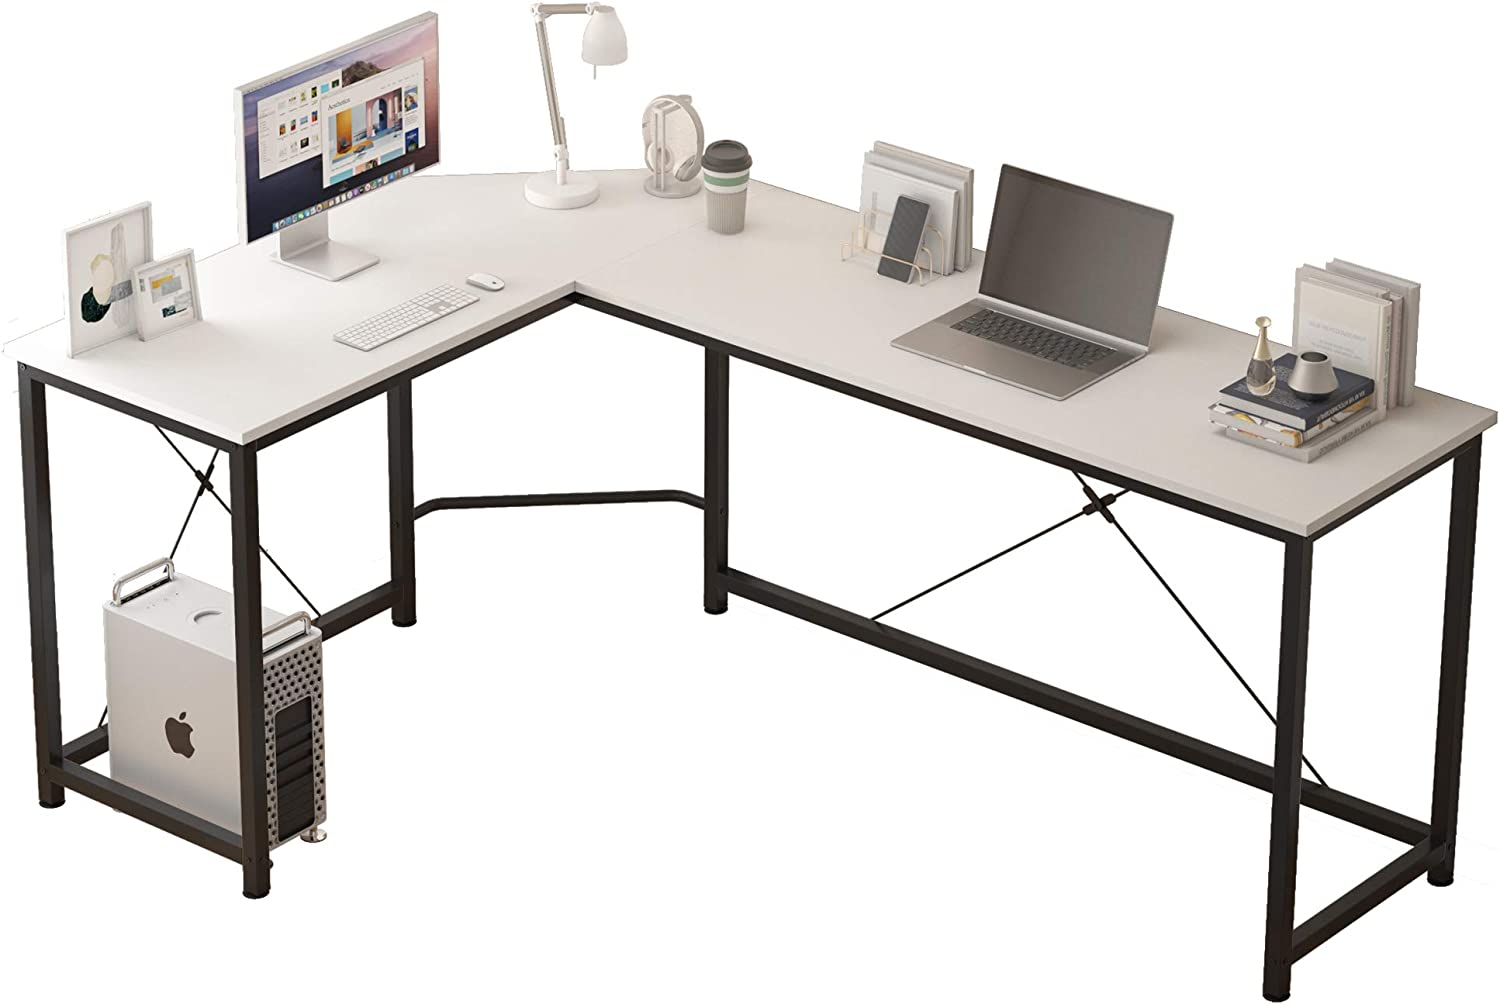 L Shaped Computer Desk Home Office Corner Desk of Spacious Desktop for Small Space Study Desk Gaming Desk Side Table with X Rods Sturdy Enhancement (White)